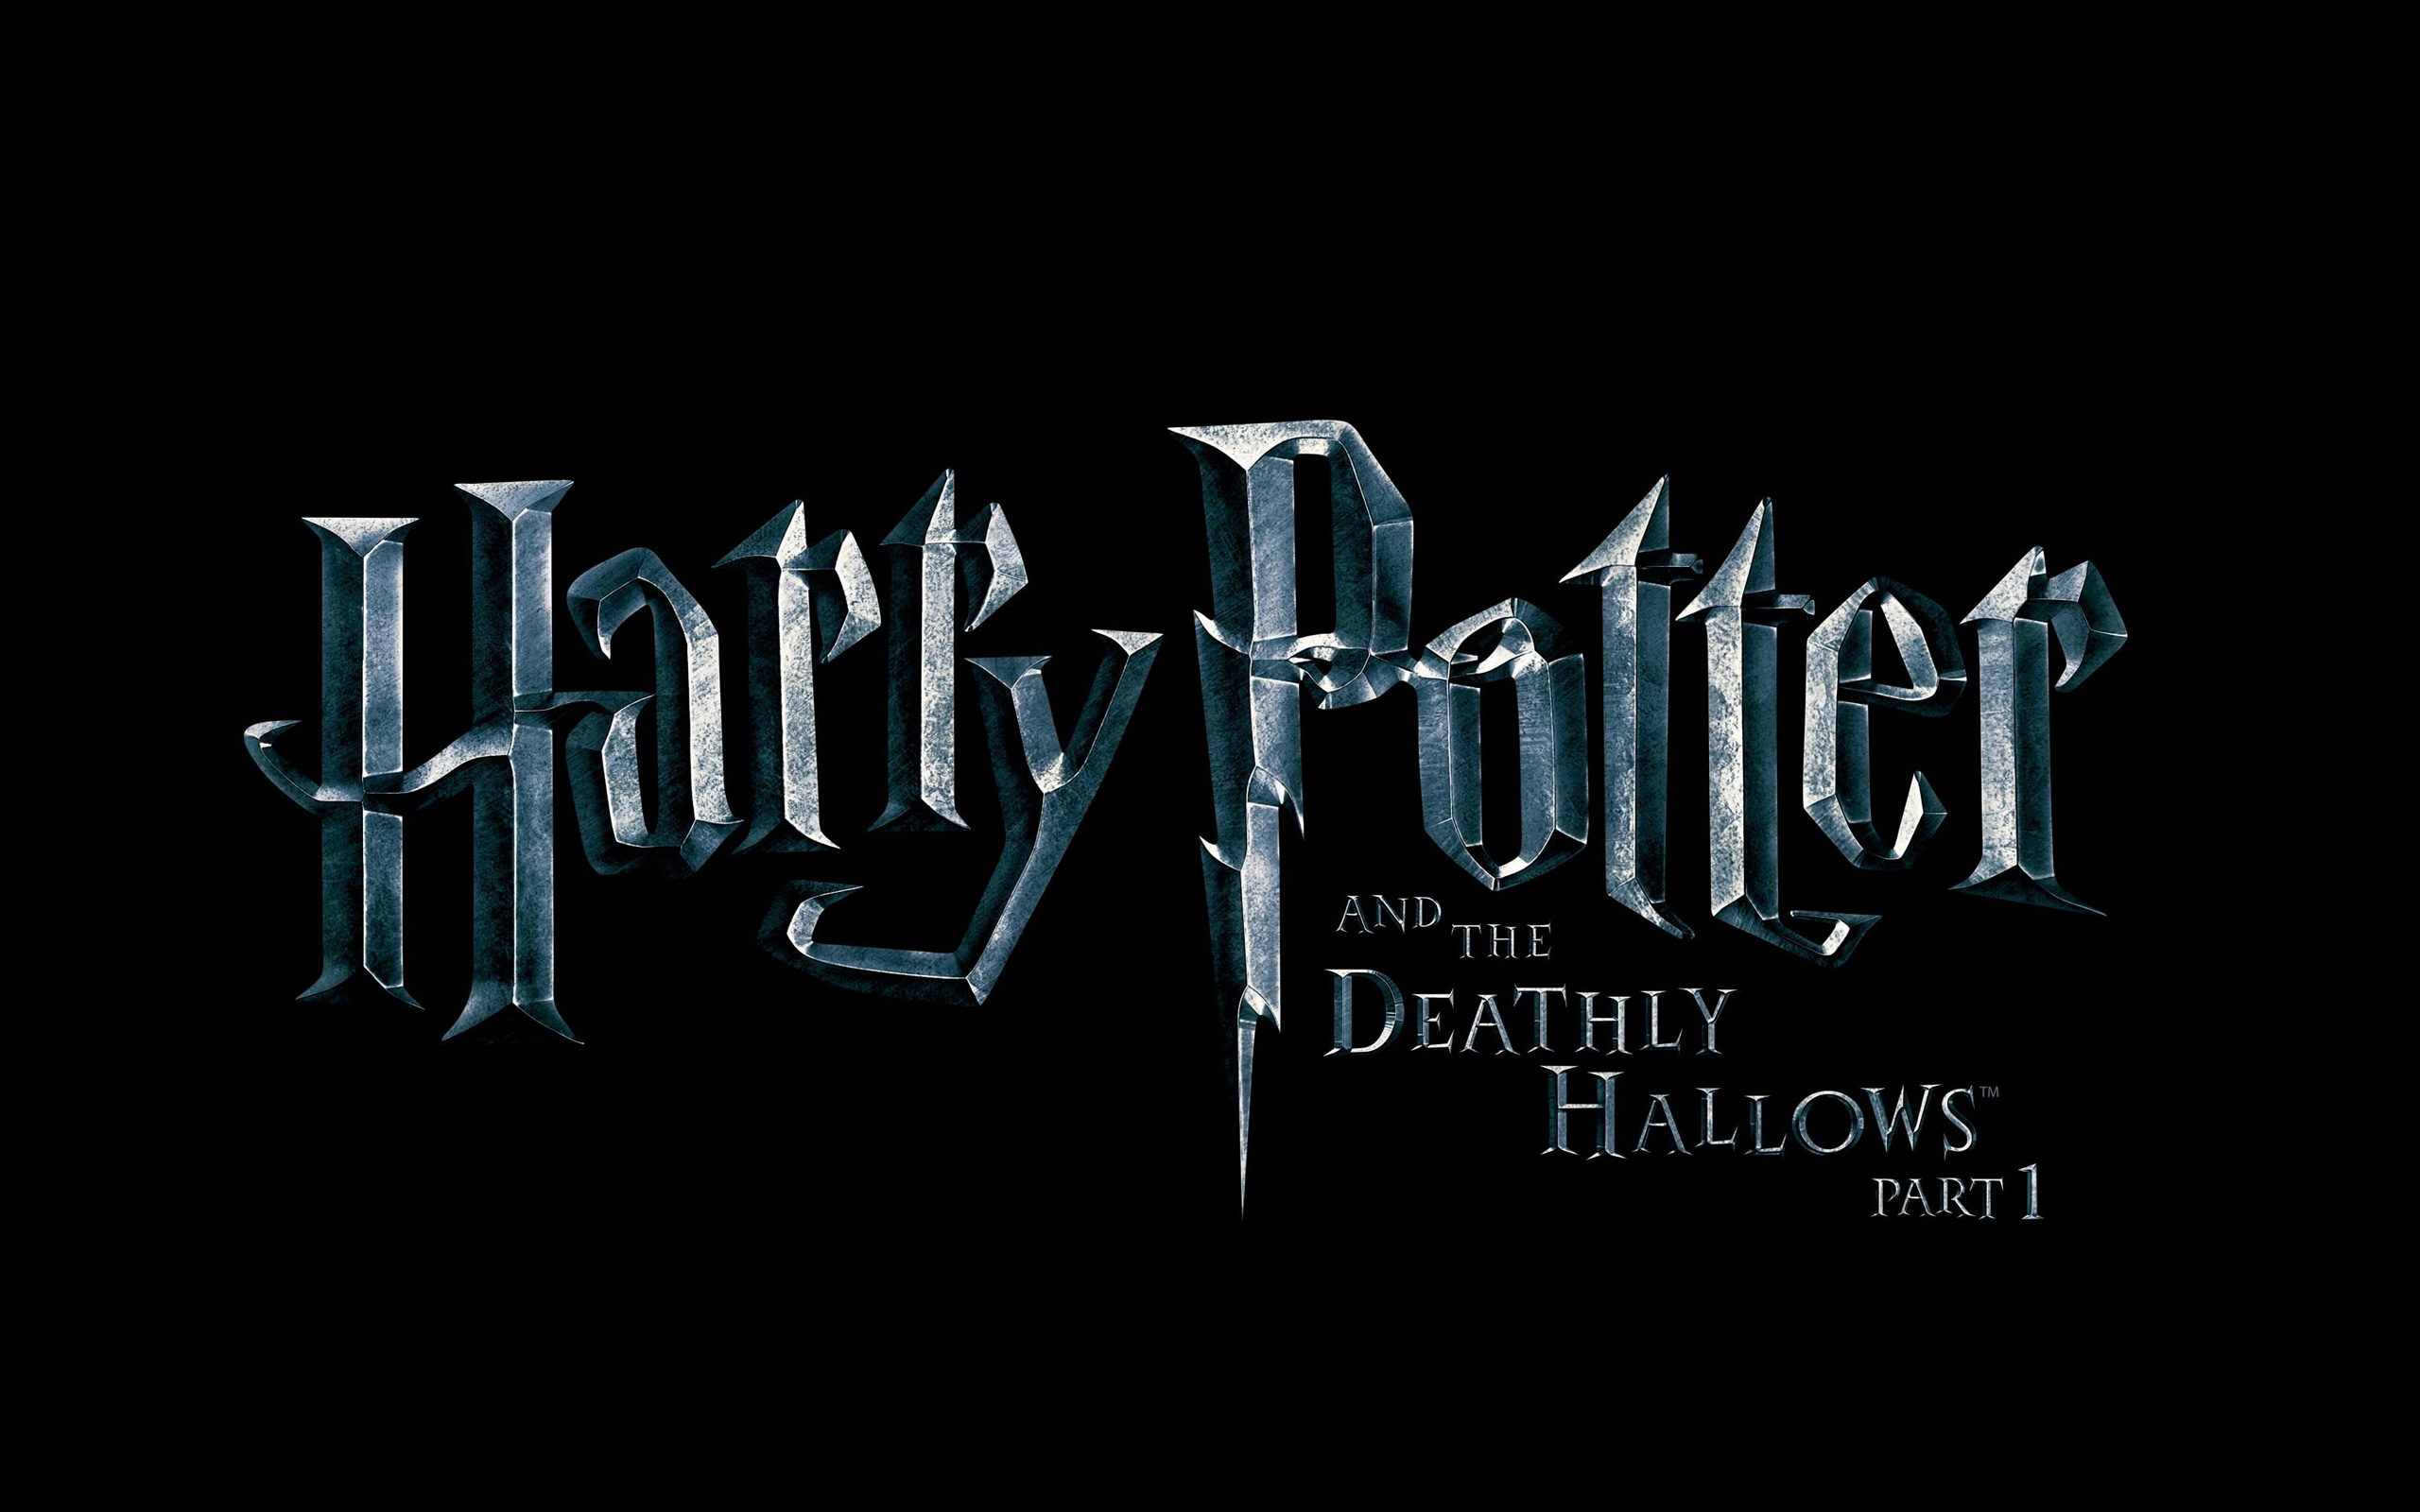 Must see Wallpaper Mac Harry Potter - harry-potter%3A-deathly-hallows_wallpapers_23311_2560x1600  Trends_587574.jpg